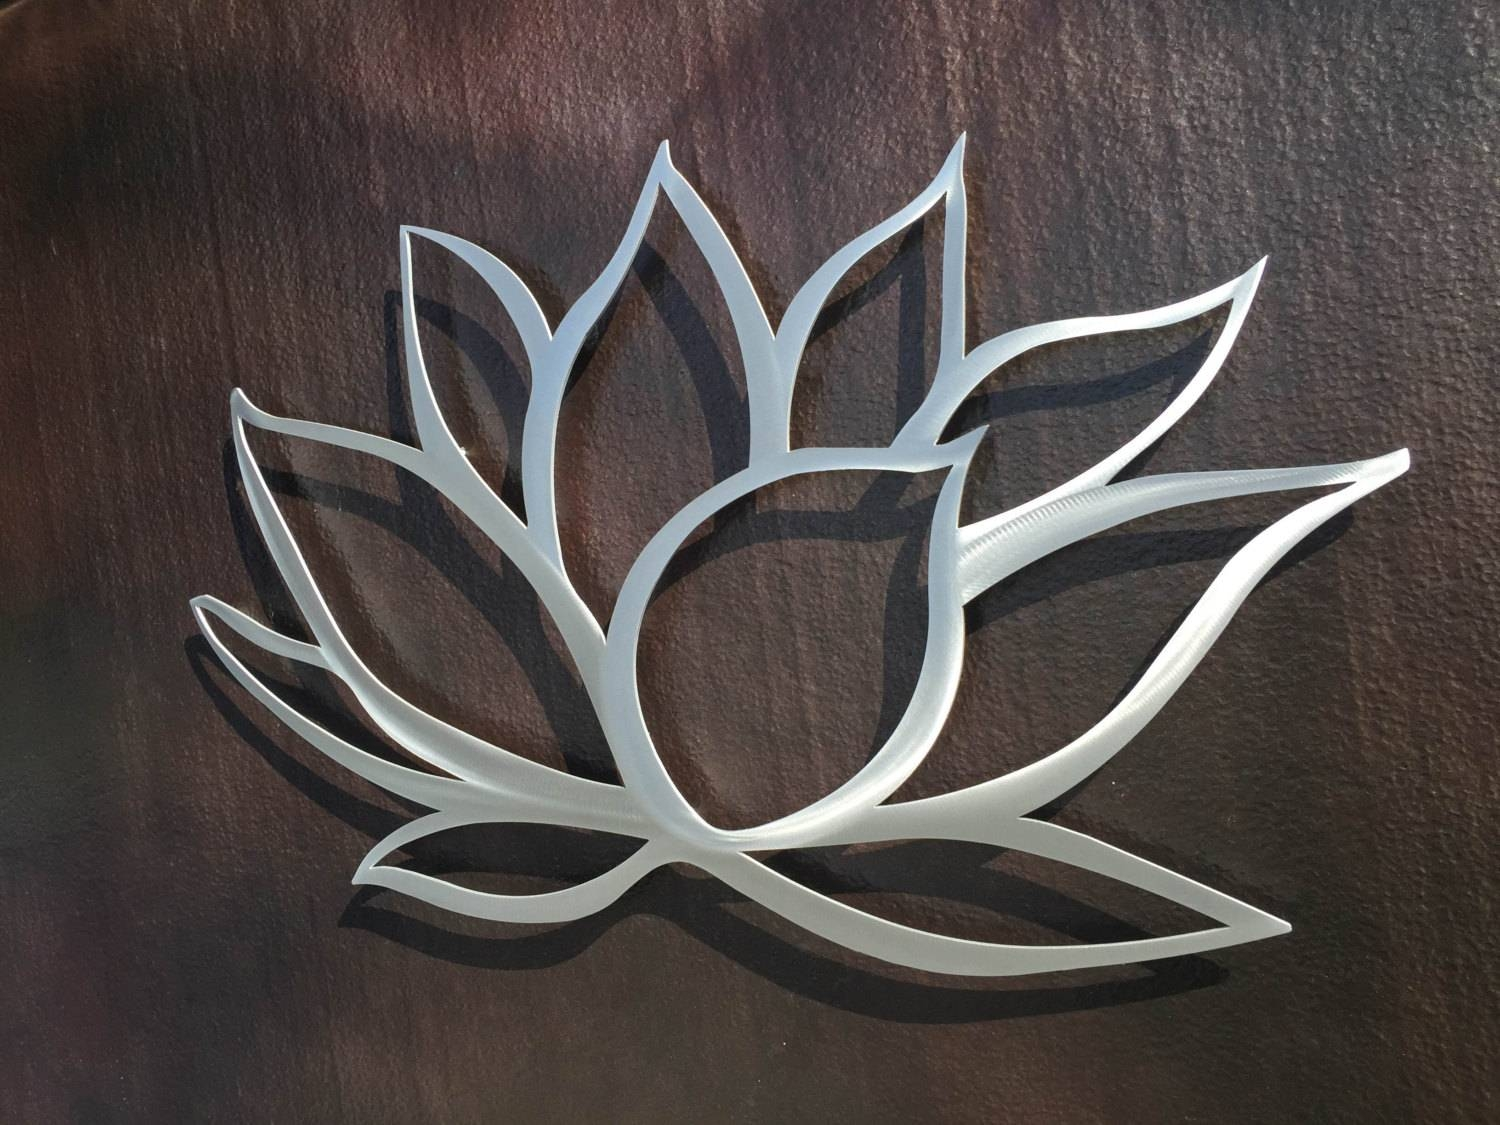 41 Silver Metal Wall Art Flowers, Home Metal Wall Art Wall Decor For Most Up To Date Contemporary Metal Wall Art Flowers (Gallery 3 of 20)